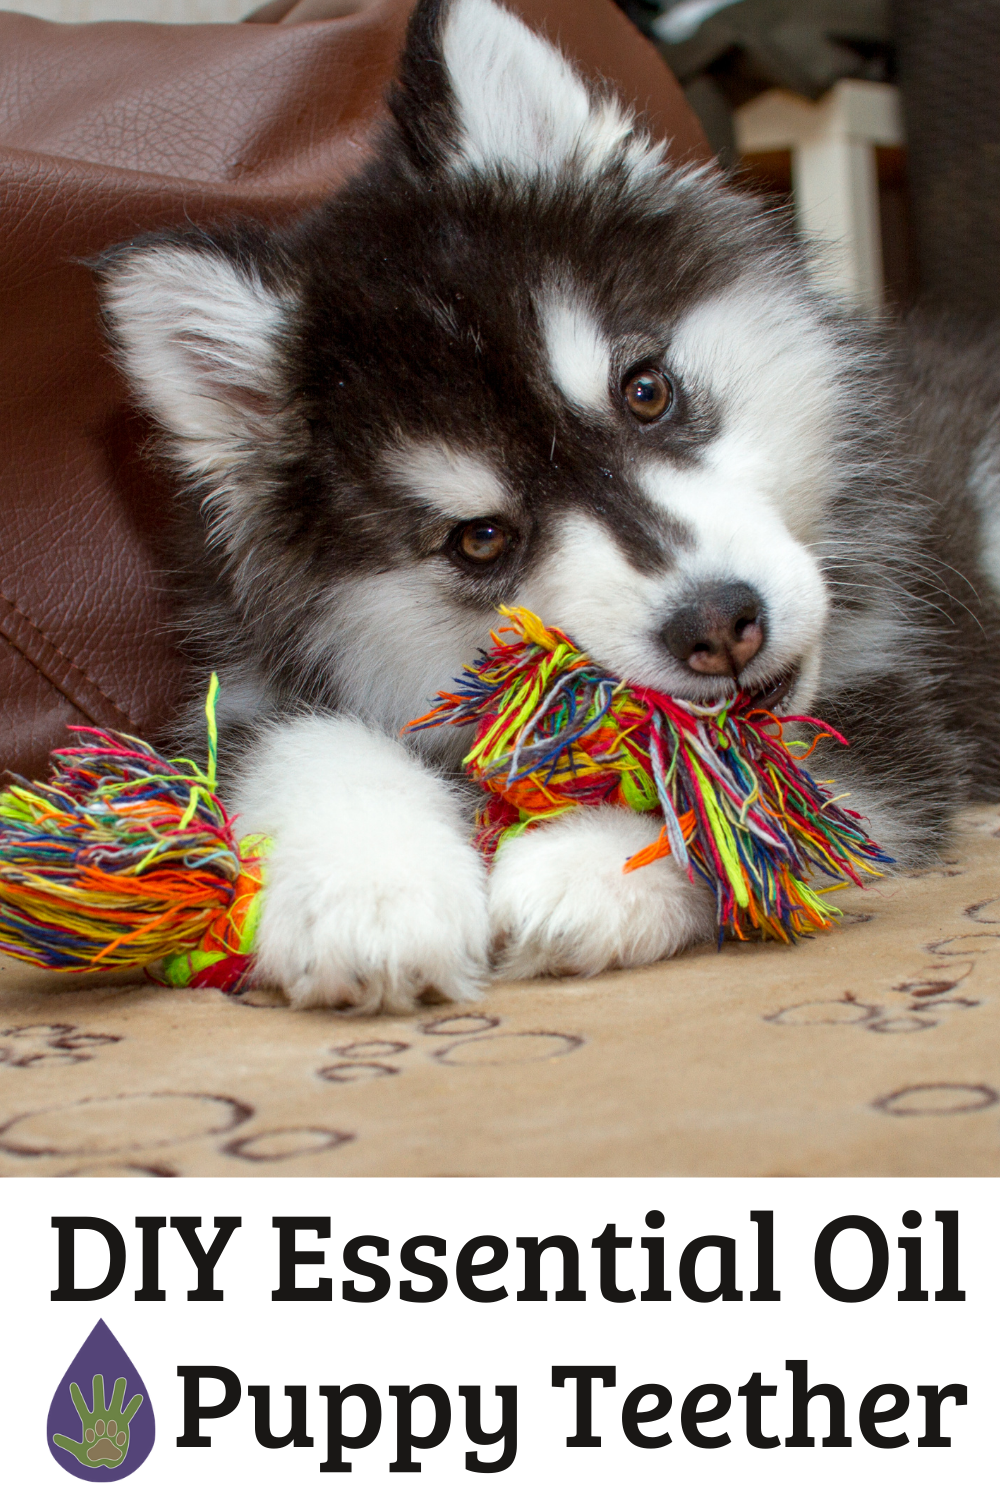 DIY Puppy Teether with Essential Oils